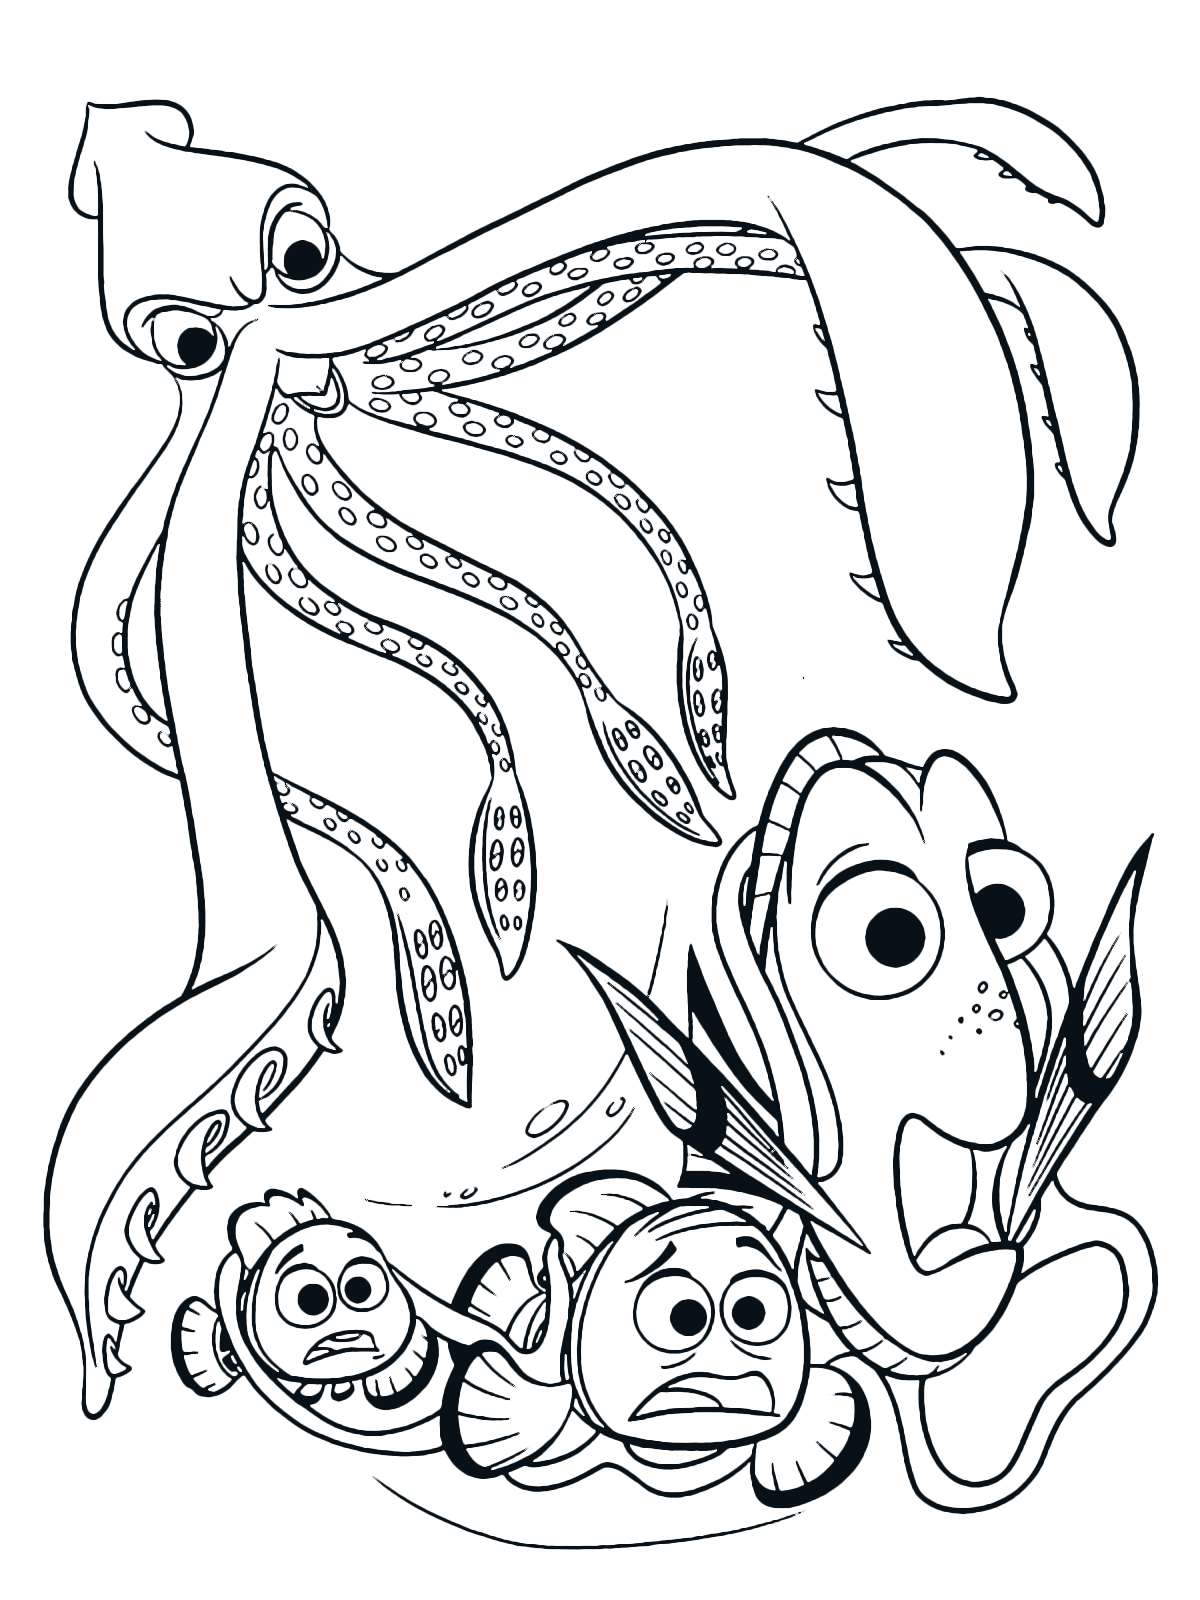 Squid And Kraken Coloring Pages